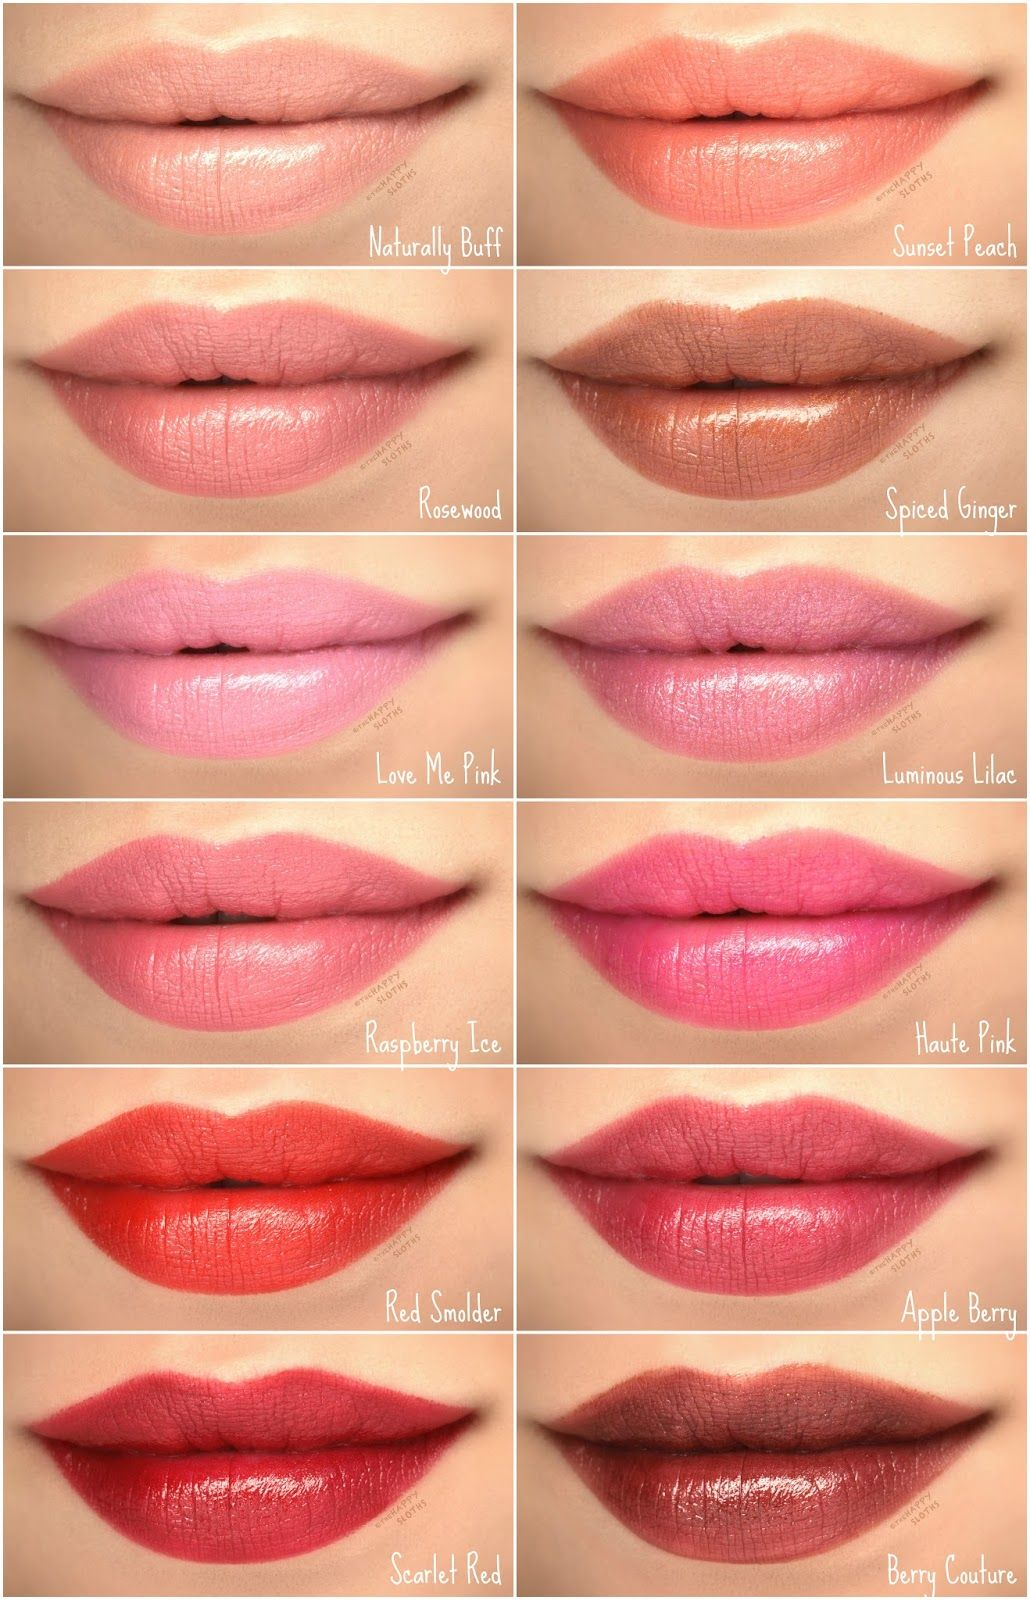 *NEW* Mary Kay Gel Semi-Shine Lipstick: Review and